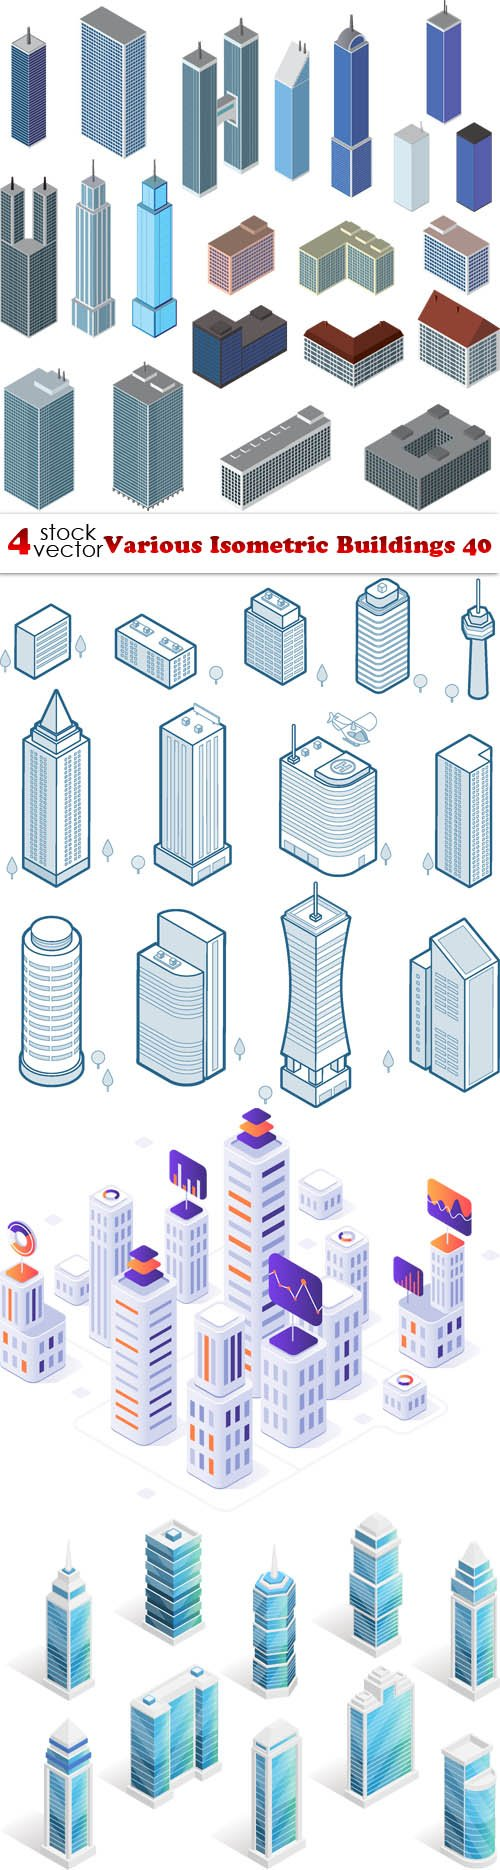 Vectors - Various Isometric Buildings 40